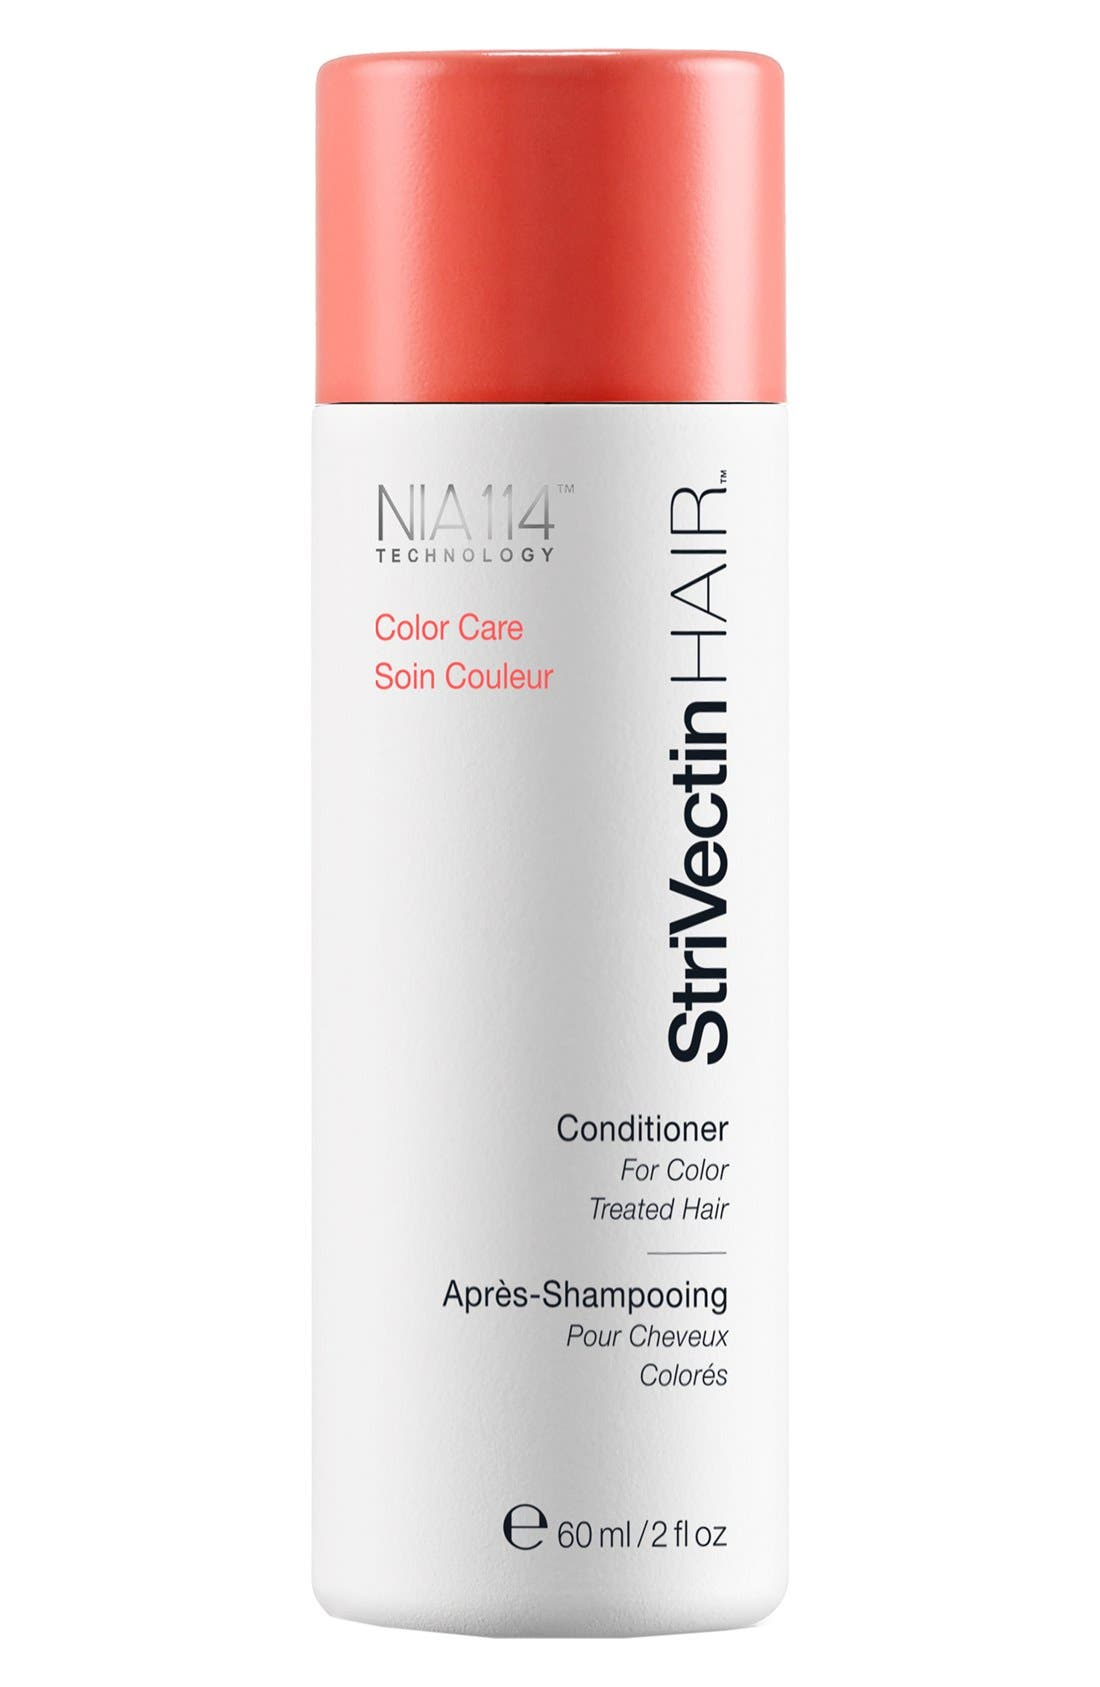 StriVectinHAIR<sup>™</sup> 'Color Care' Conditioner for Color Treated Hair,                         Main,                         color, 000